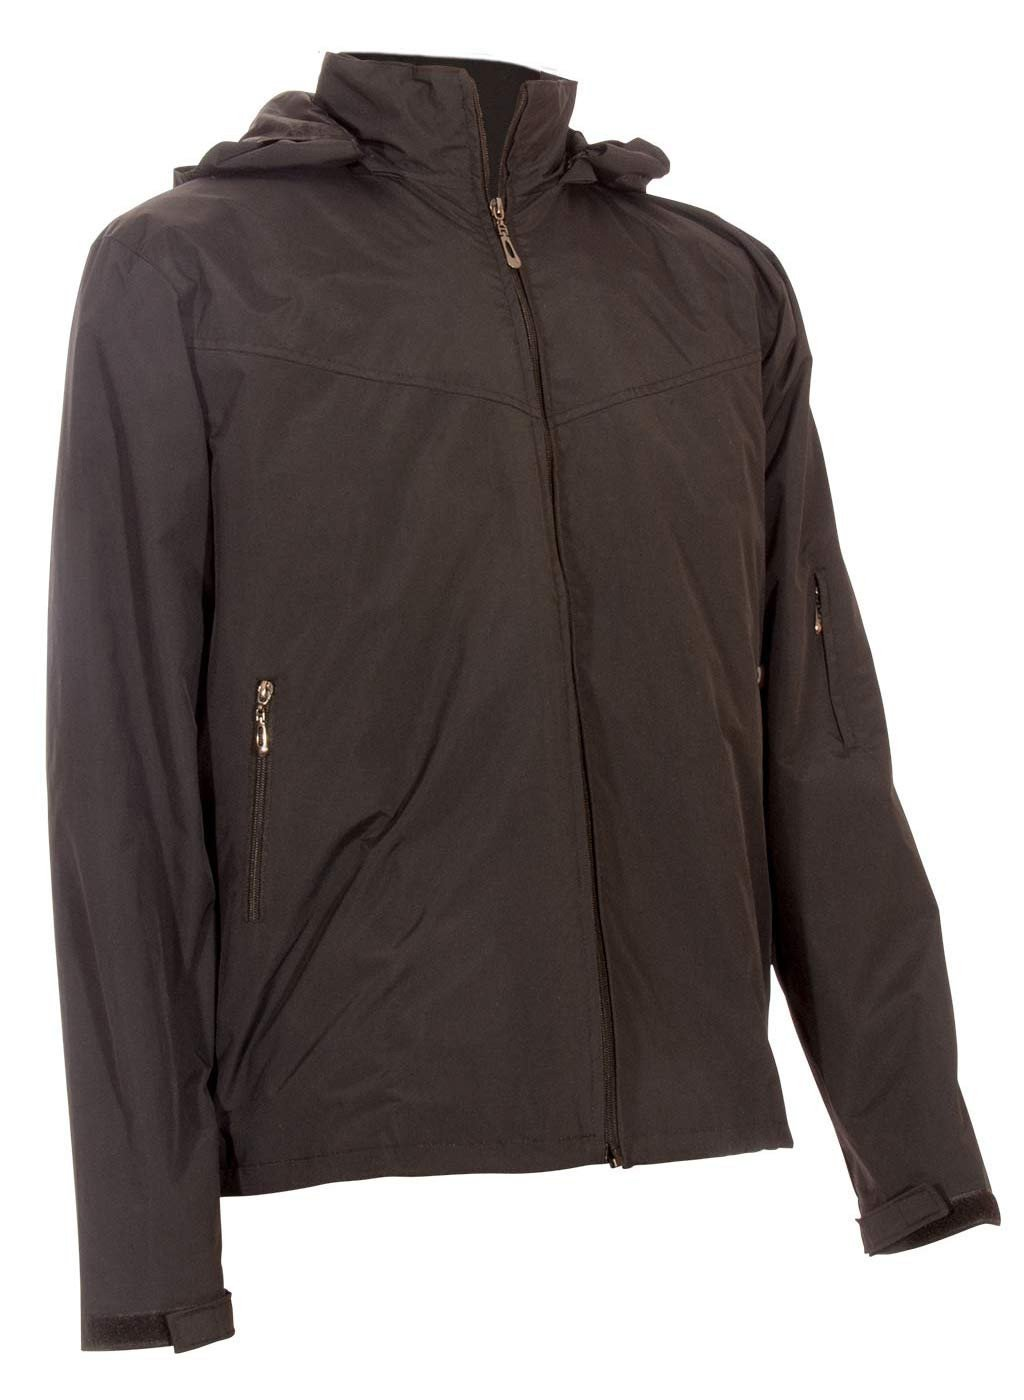 Brown Travel Jacket with lots of pockets